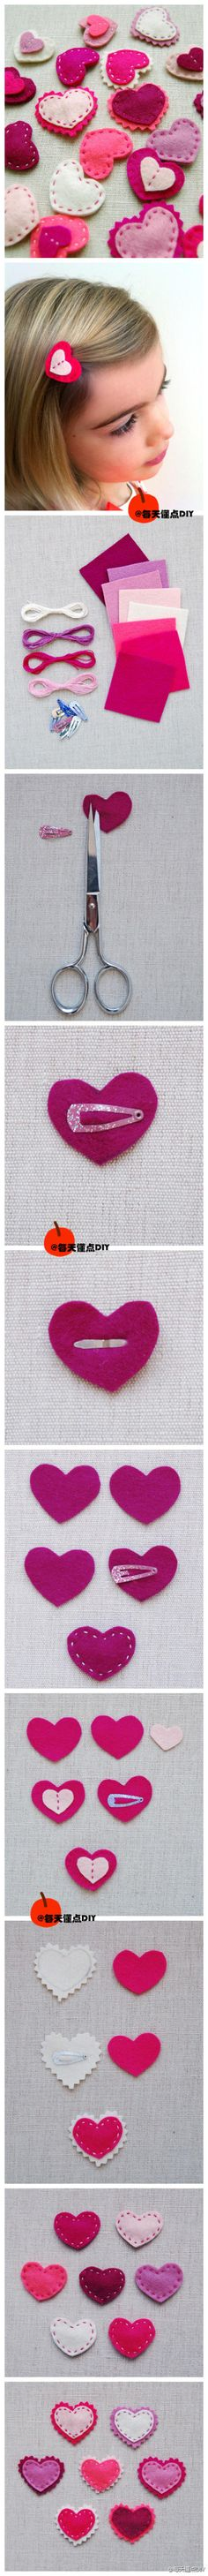 Felt heart hair clips - cute photo tutorial for easy clips - linked to Spanish Pinterest